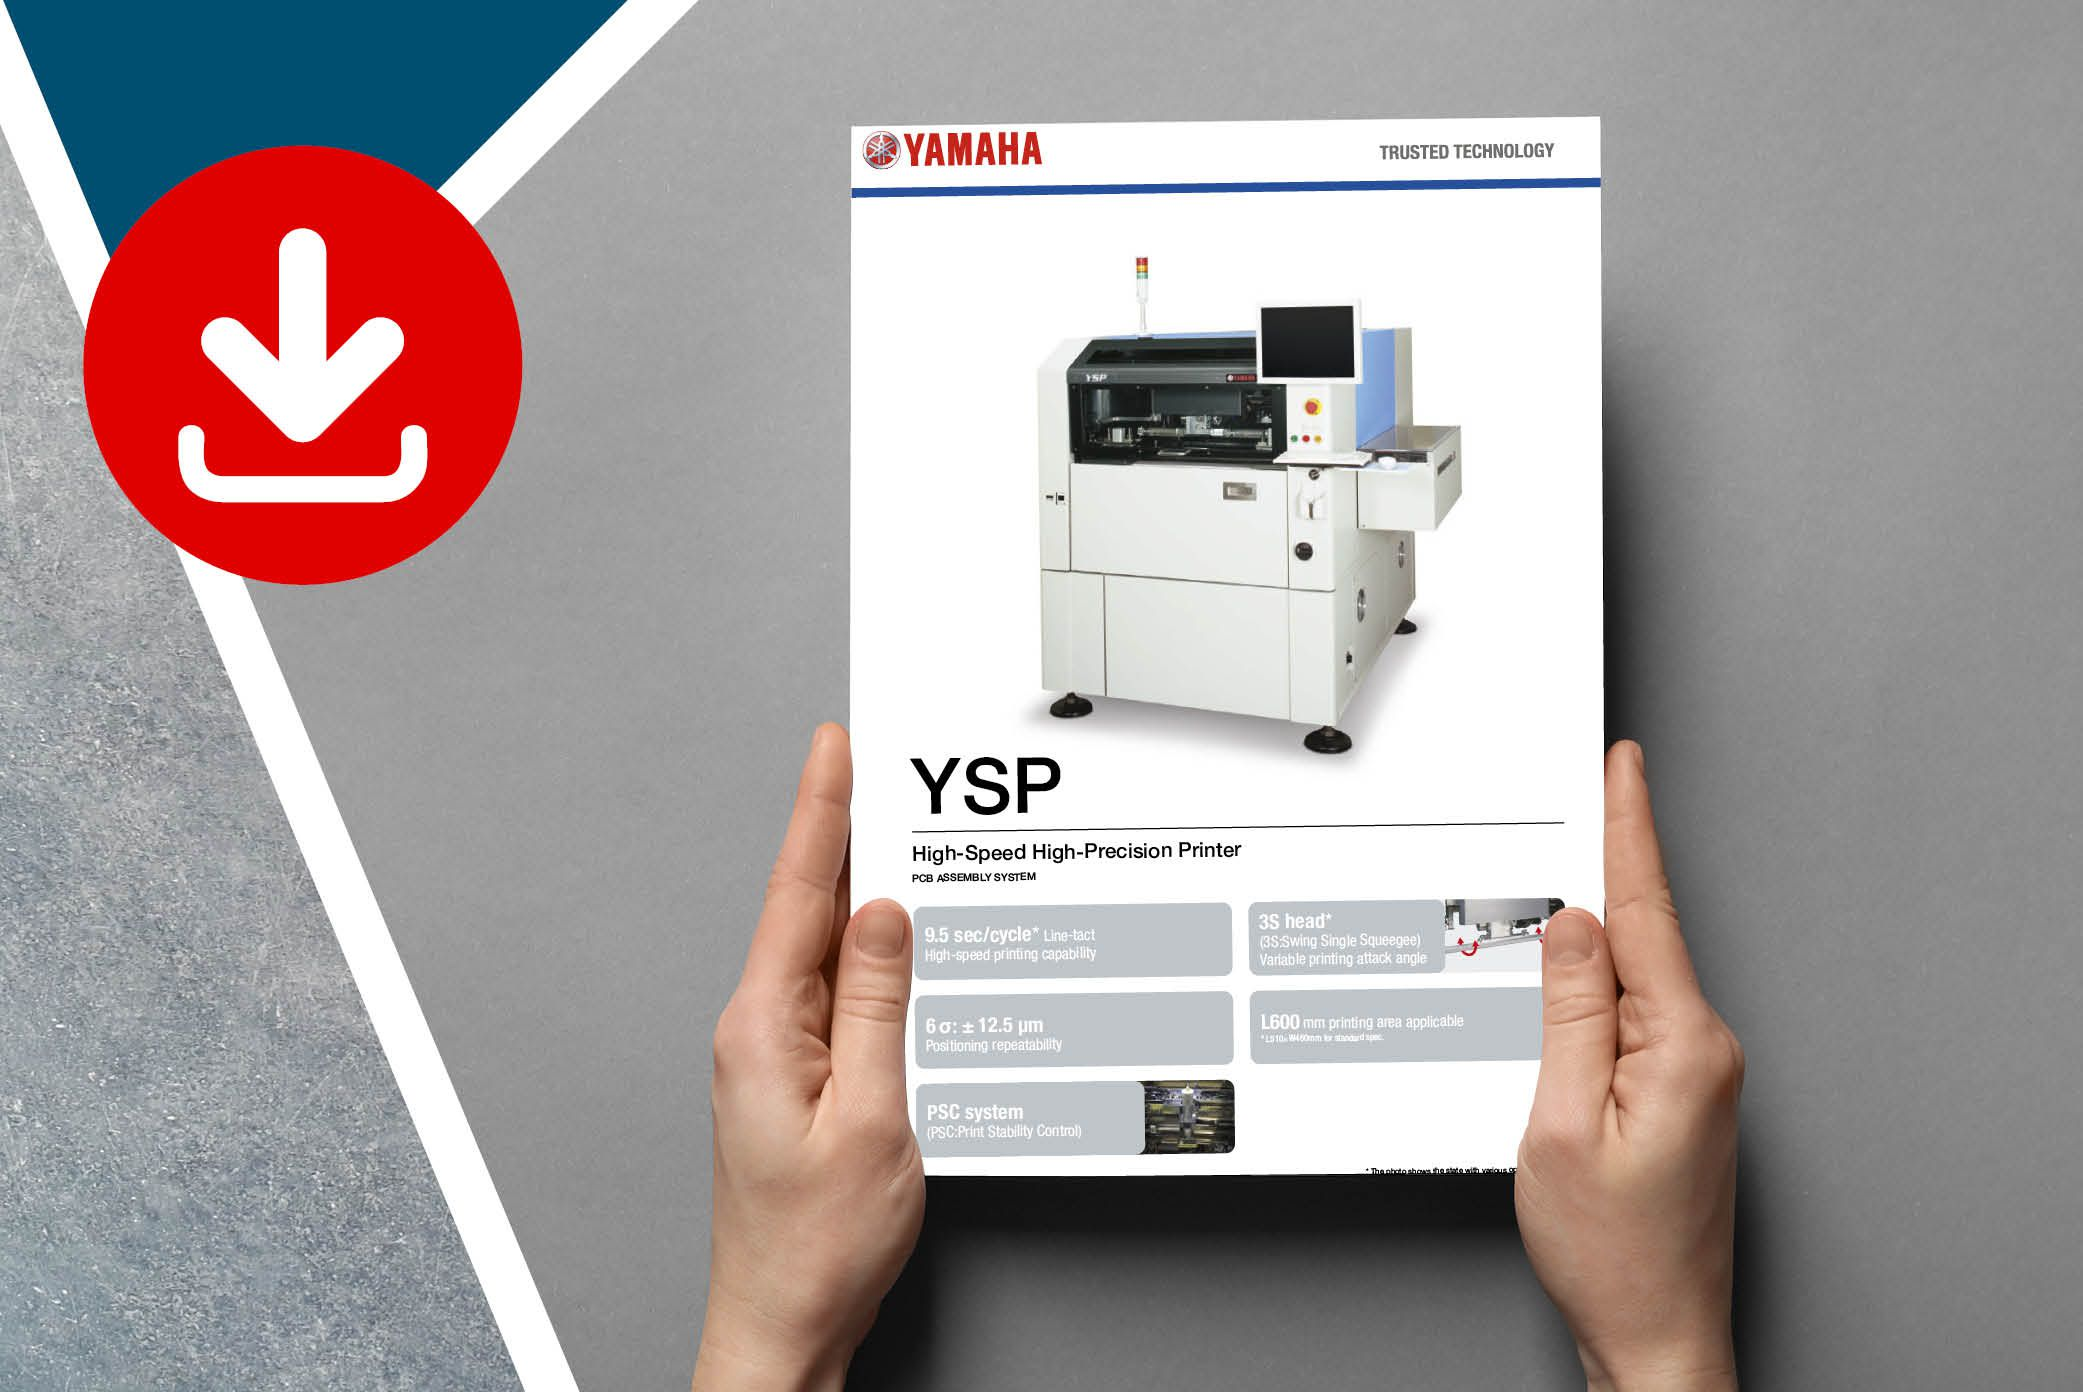 Find spec sheet to download for the YAMAHA YSP screen printer